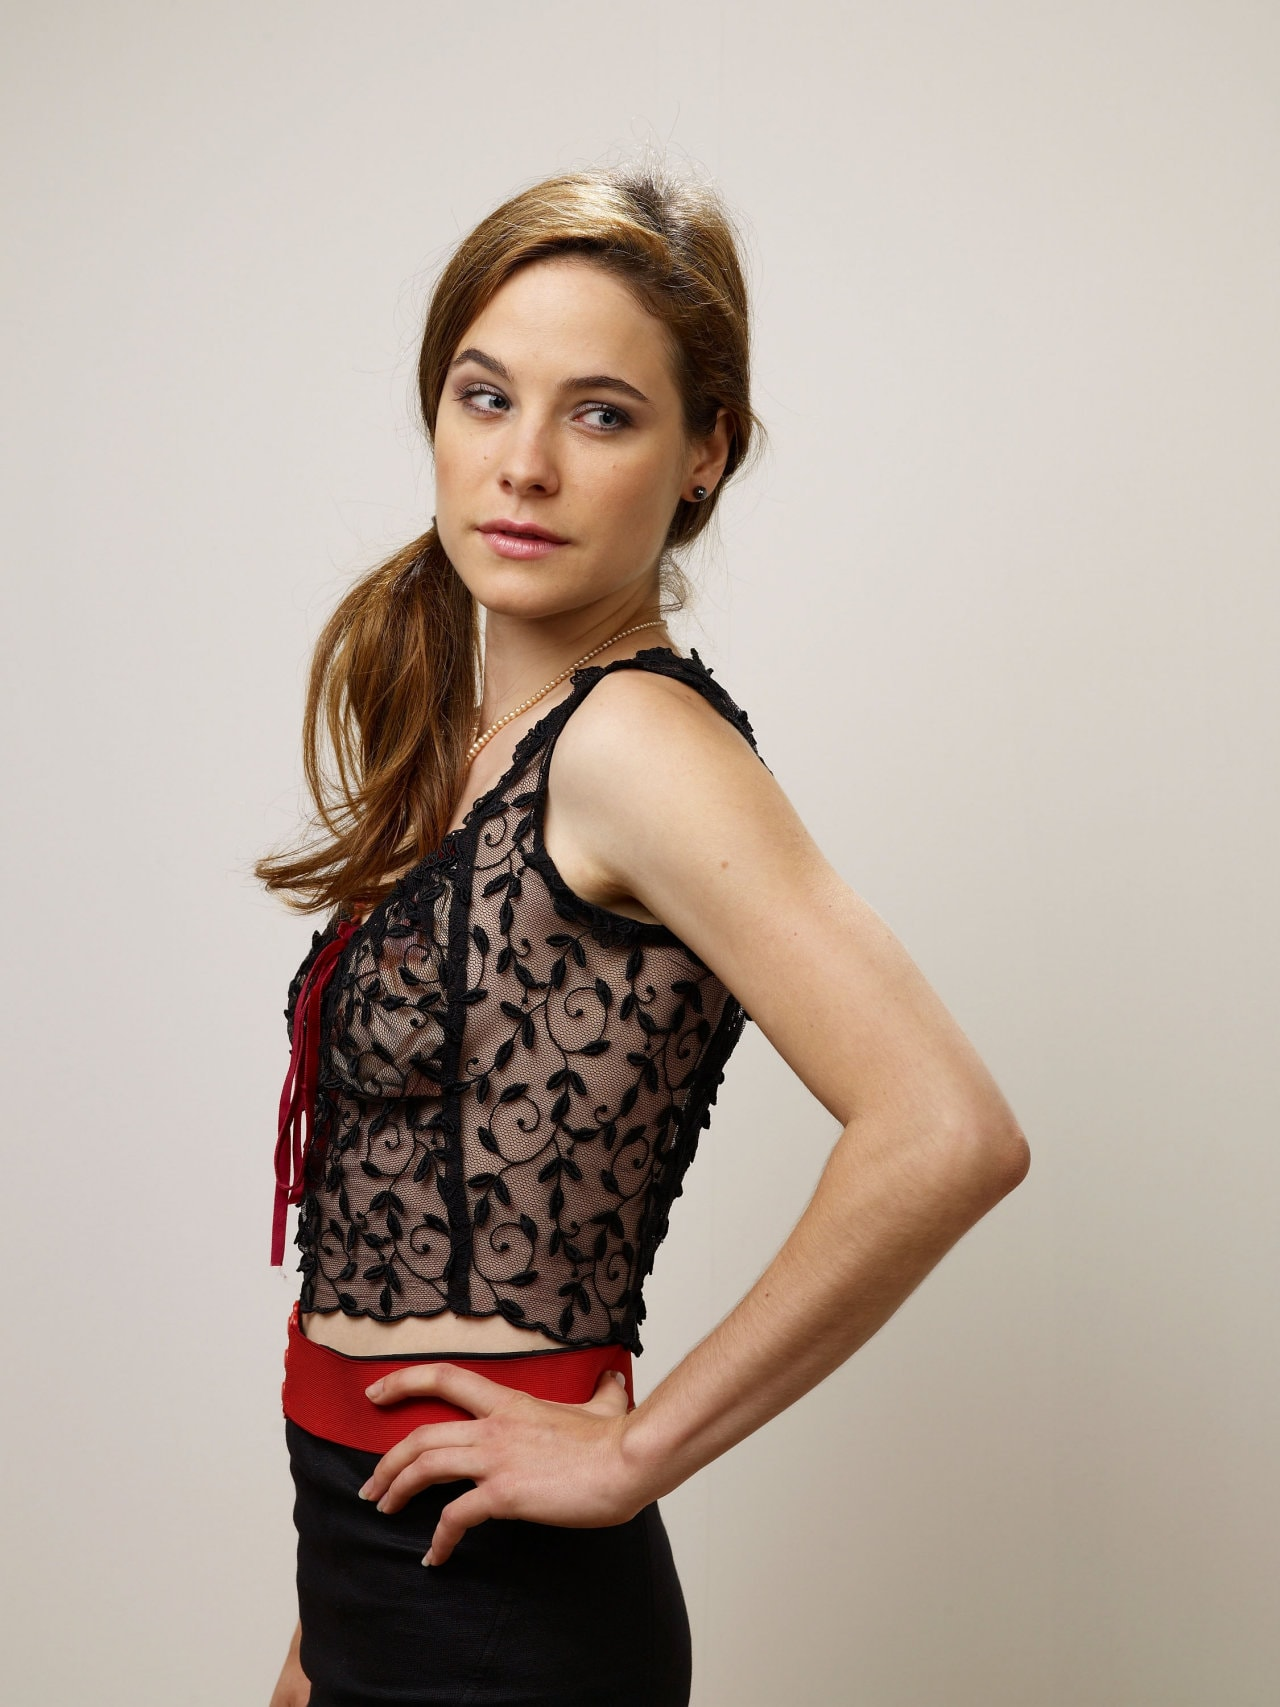 Caroline Dhavernas HQ wallpapers